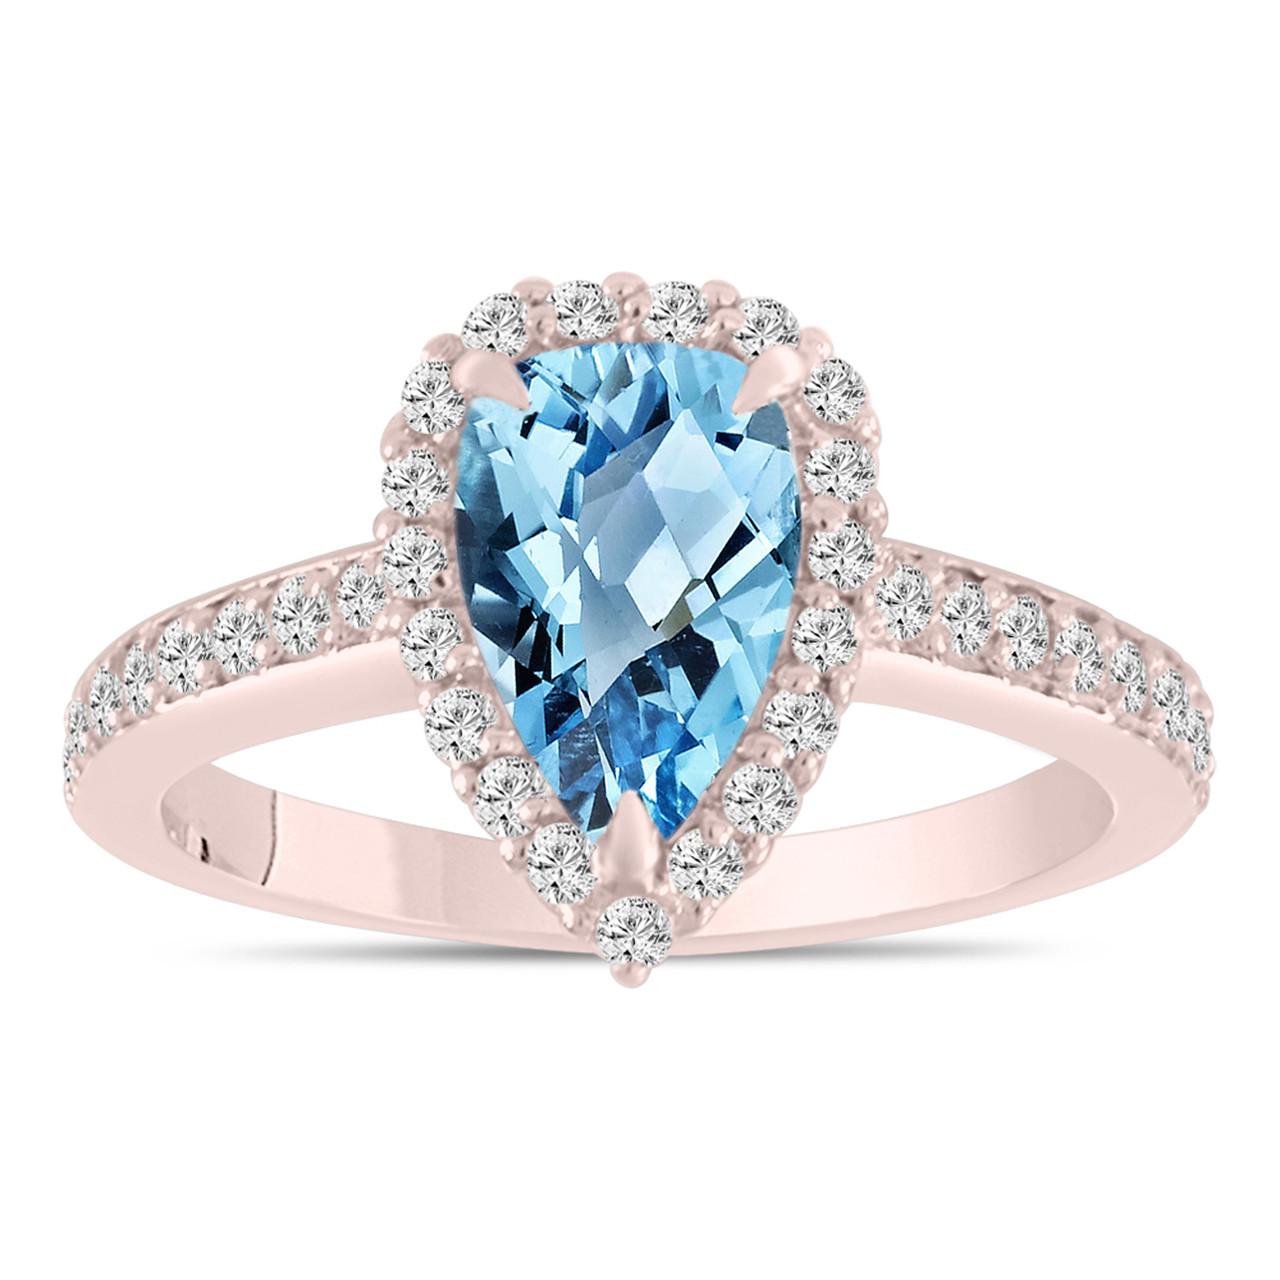 Pear Shaped Blue Topaz Engagement Ring Blue Topaz And Diamonds Wedding Ring 14k Rose Gold 2 Carat Unique Handmade Certified